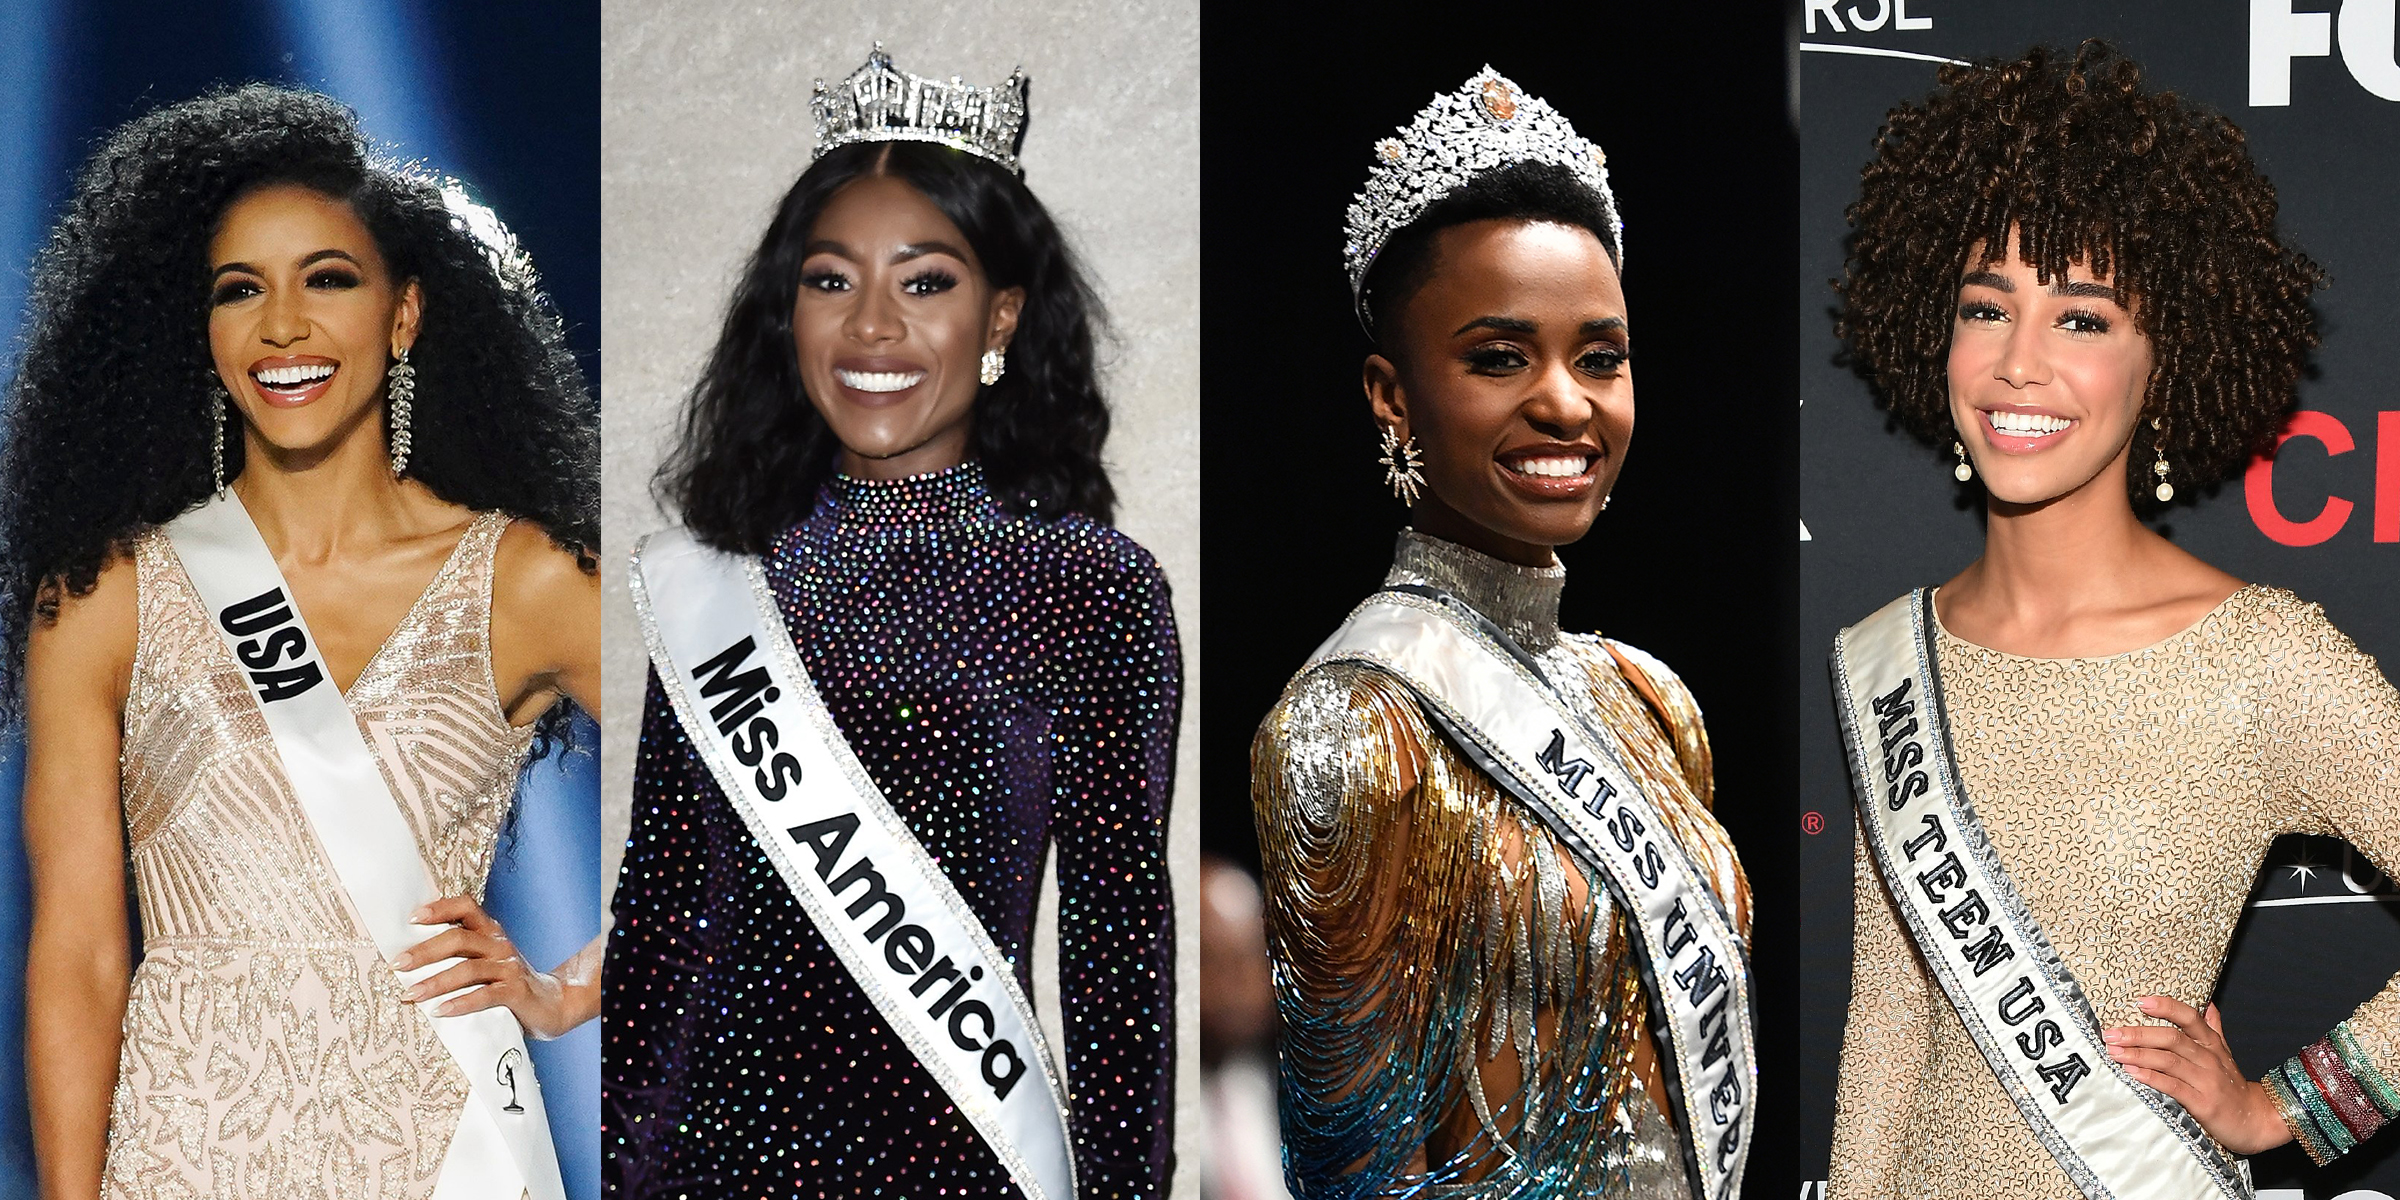 https://media1.s-nbcnews.com/i/newscms/2019_50/1518056/pageant-milestone-black-women-today-main-191210_841514f56a4380f0f5c91aa28505709d.jpg